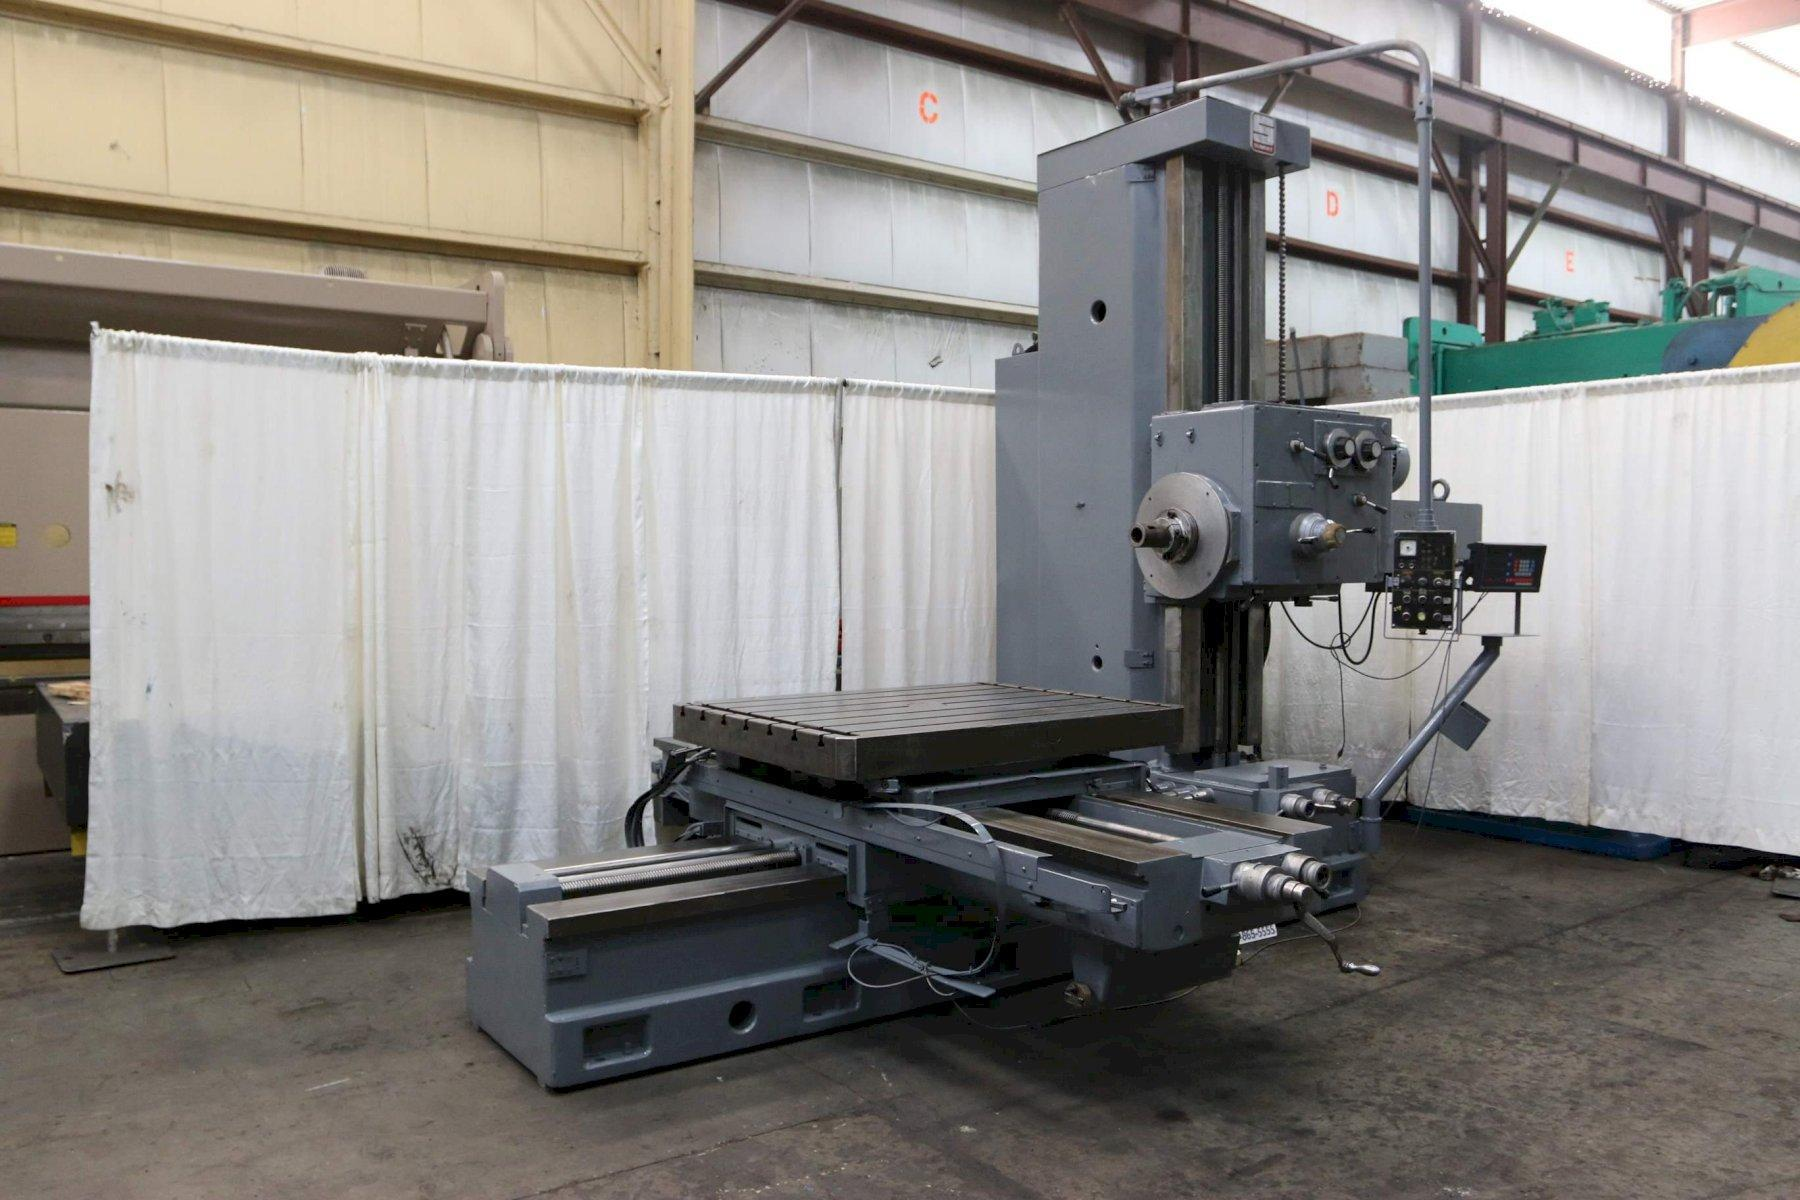 4' SUMMIT MODEL AFD-100 ROTARY TABLE HORIZONTAL BORING MILL: #68767